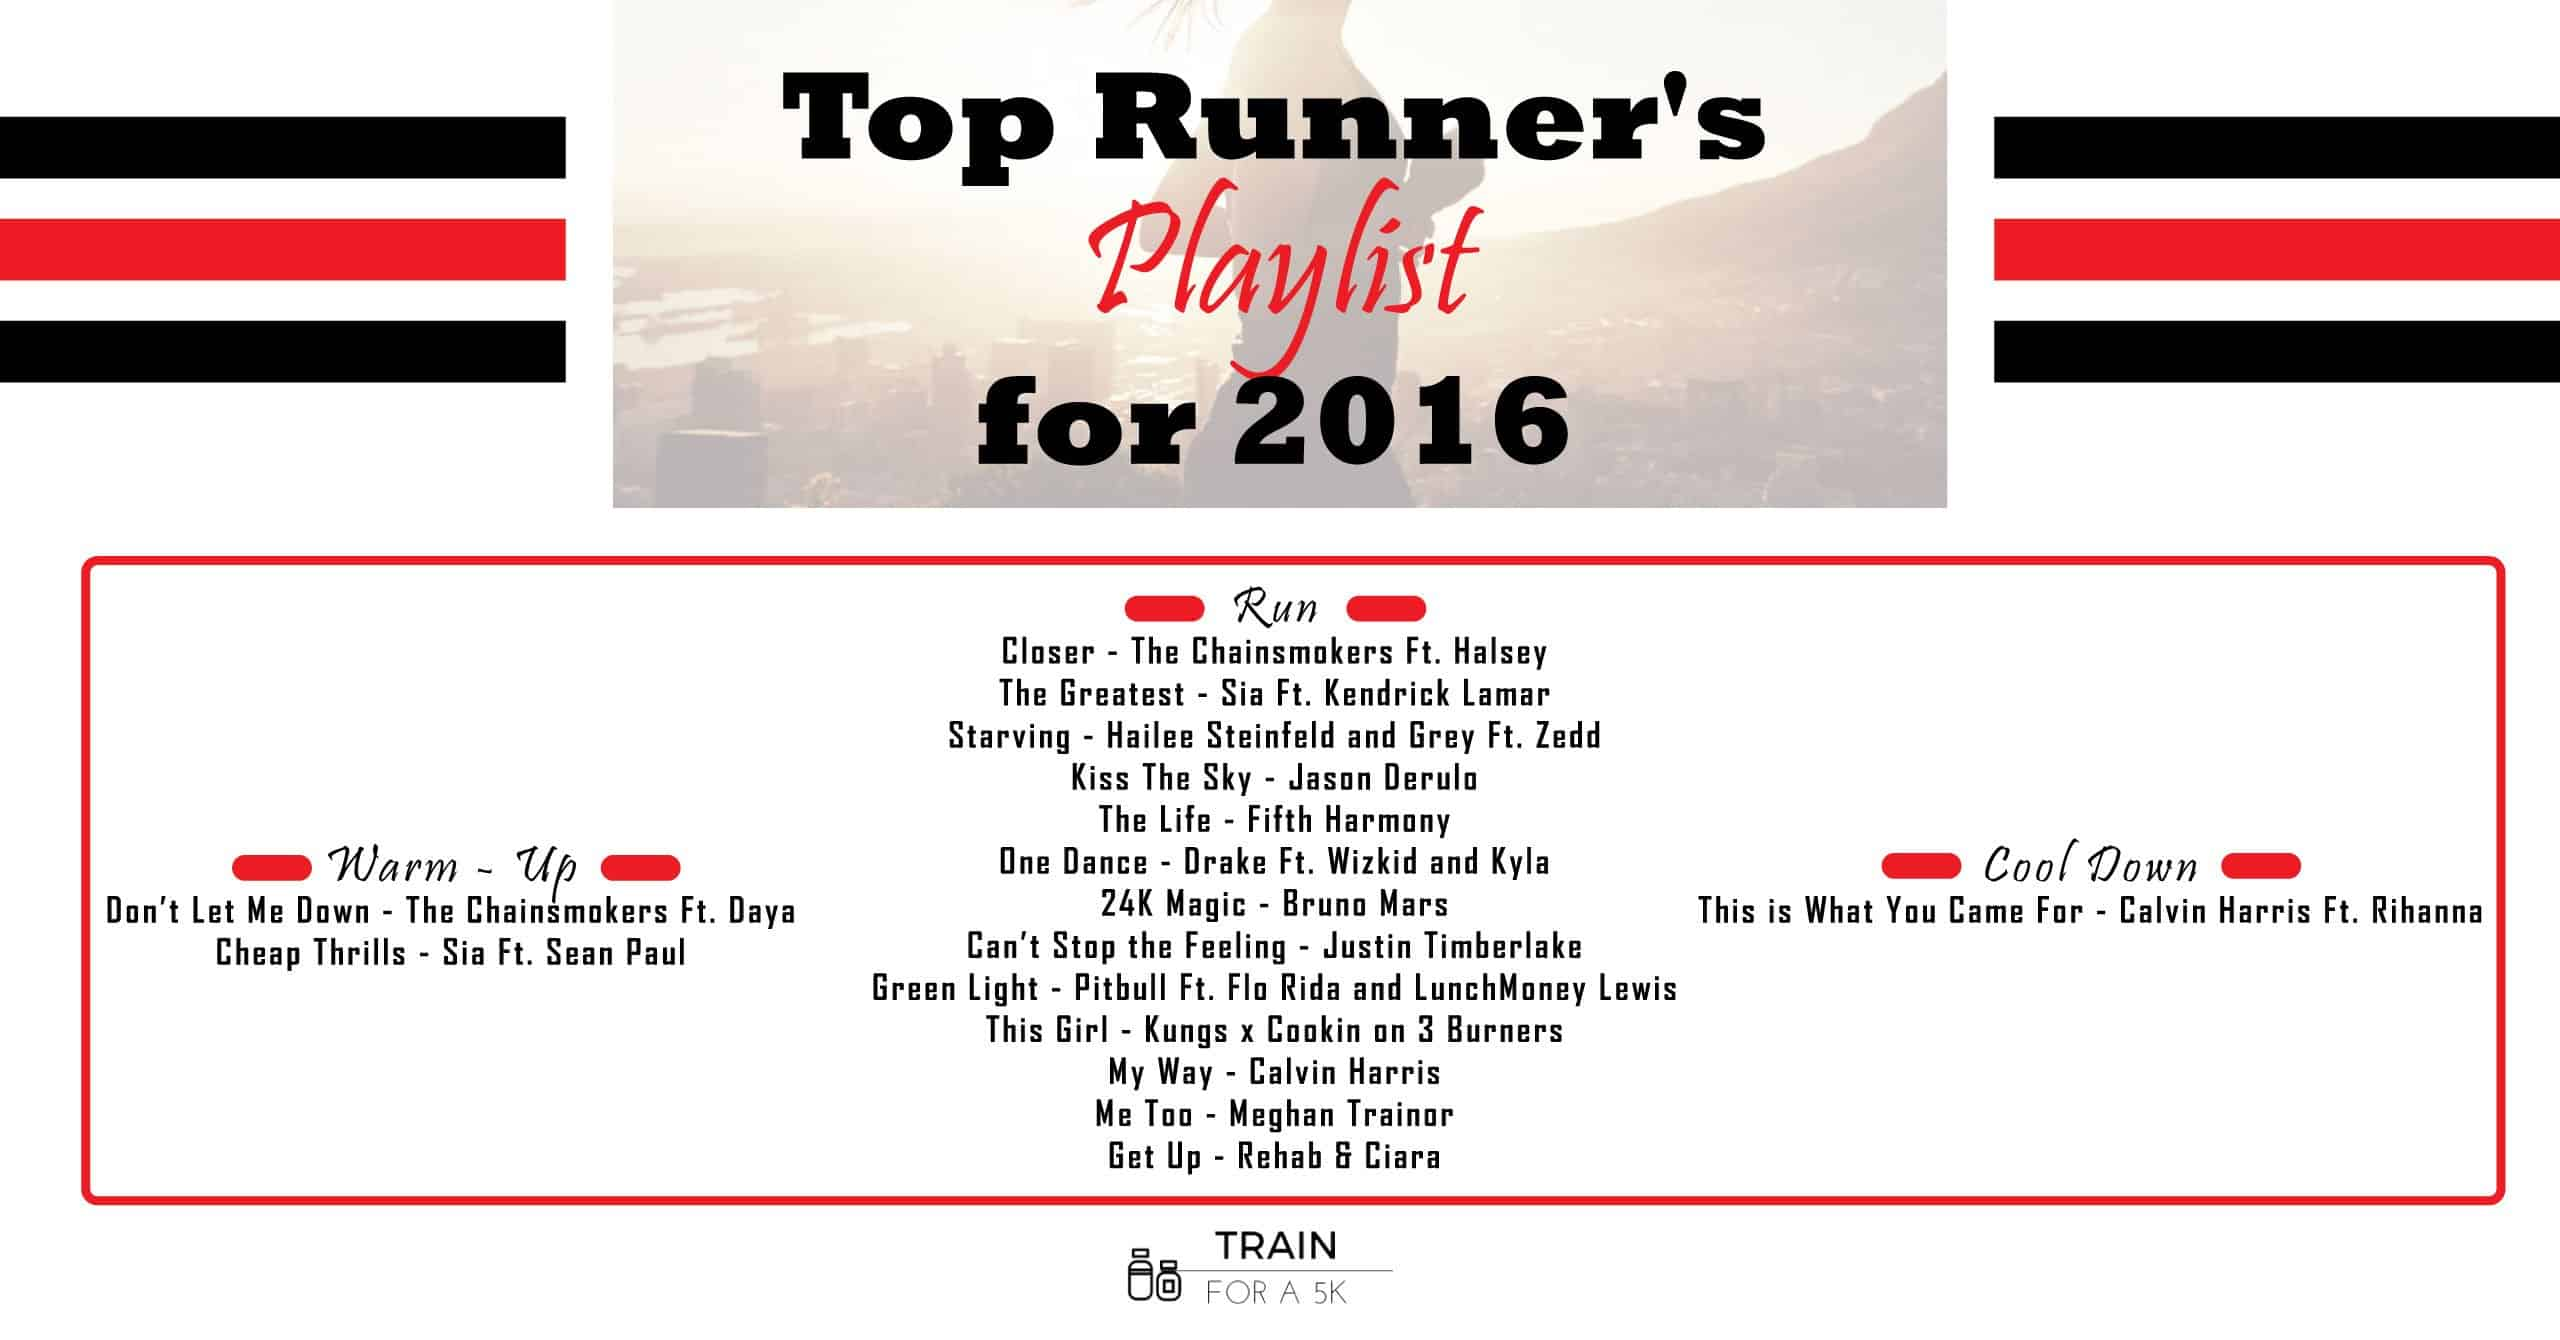 We list out the best songs to run to in our Top Runner's Playlist for 2016